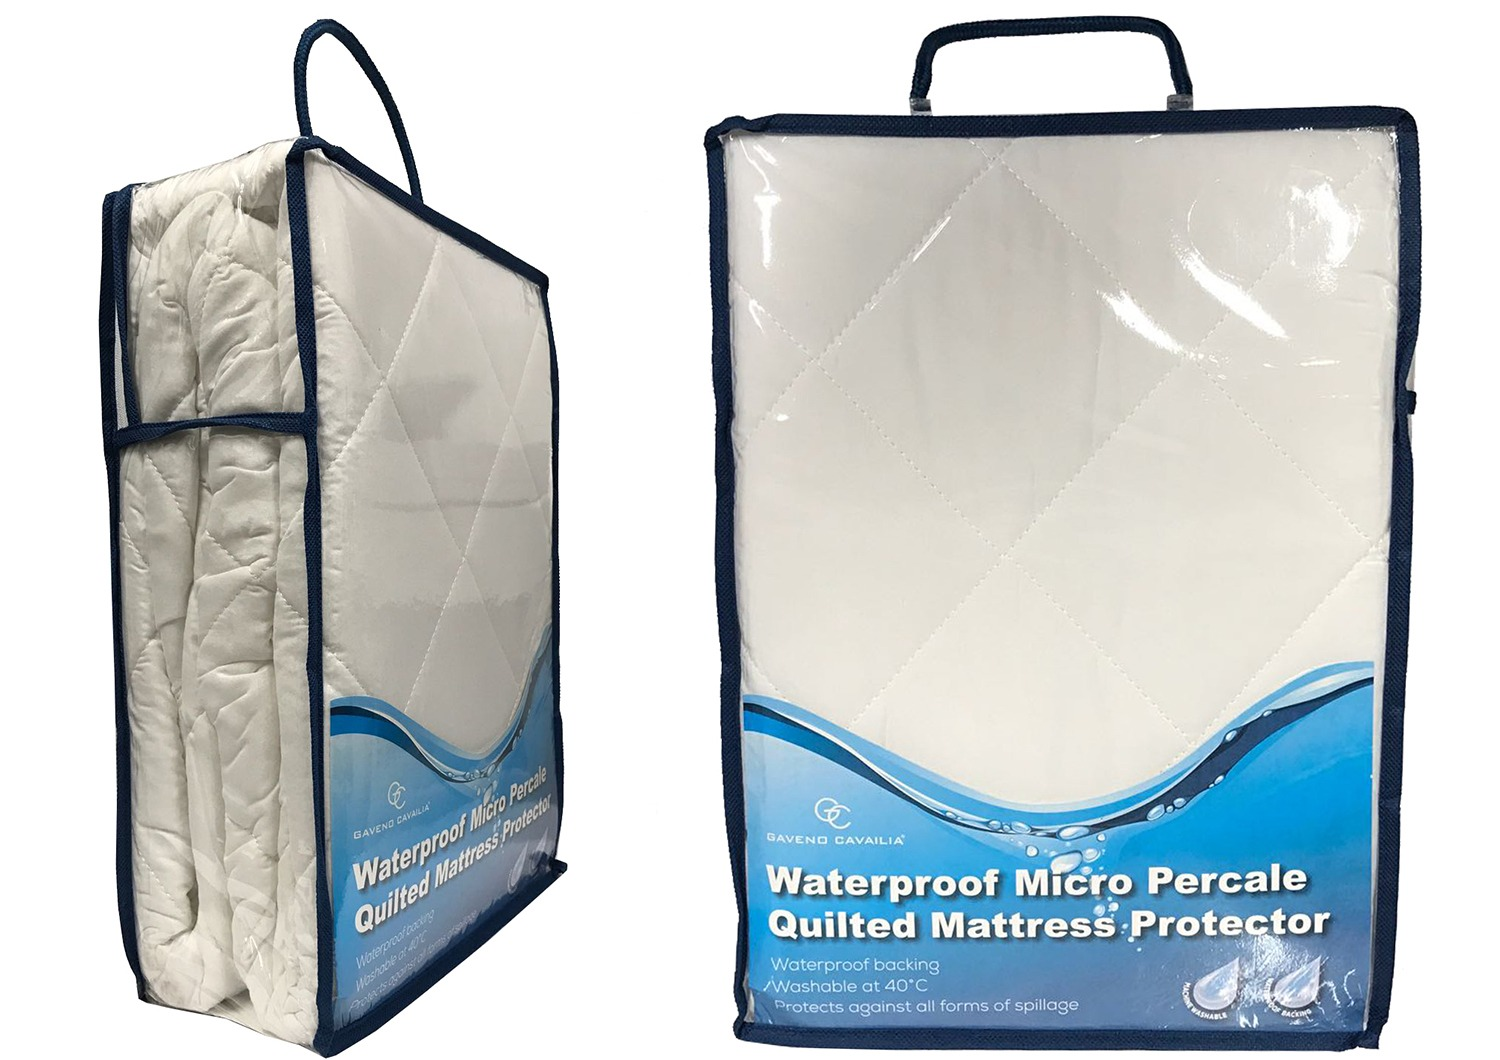 goldstar waterproof-Micro-Percale-topper